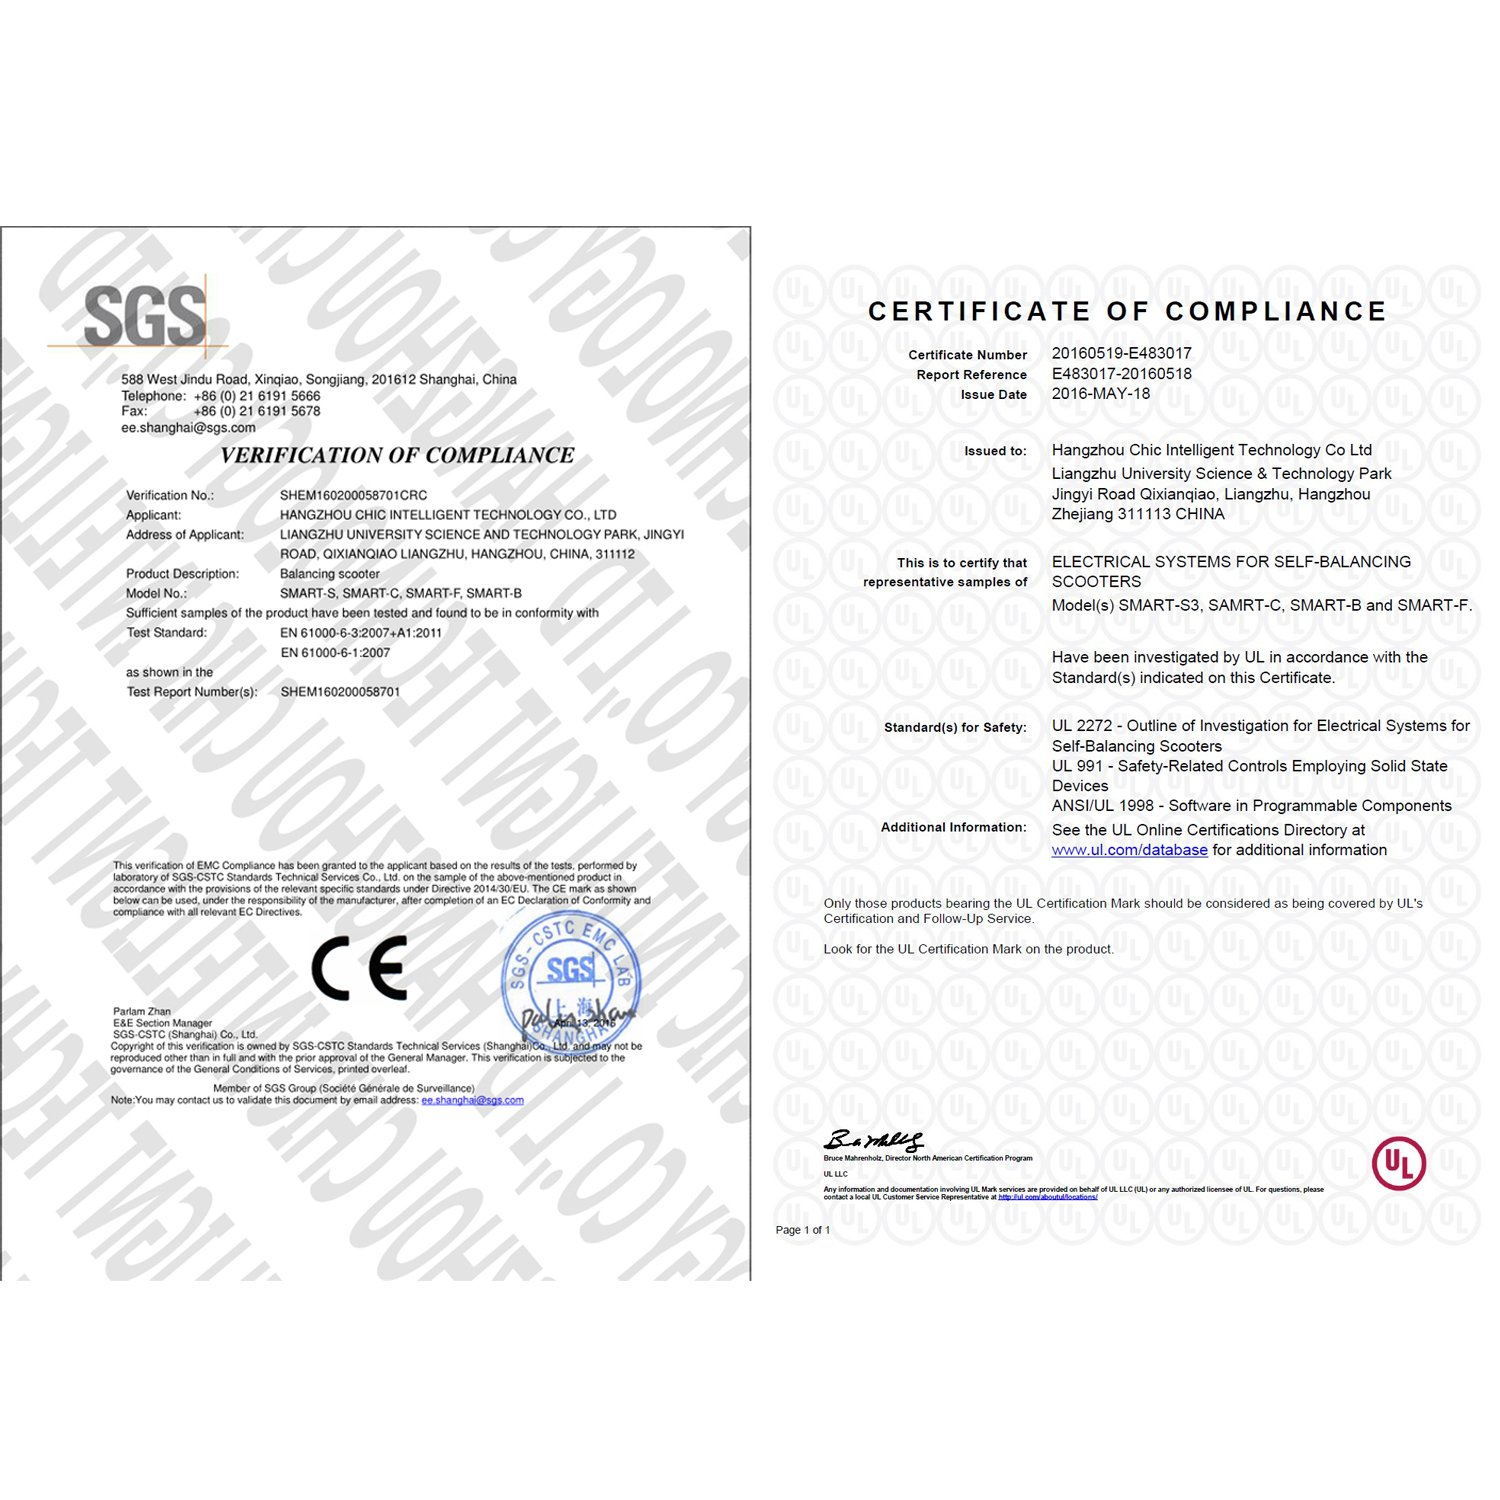 Scooter dating certificate